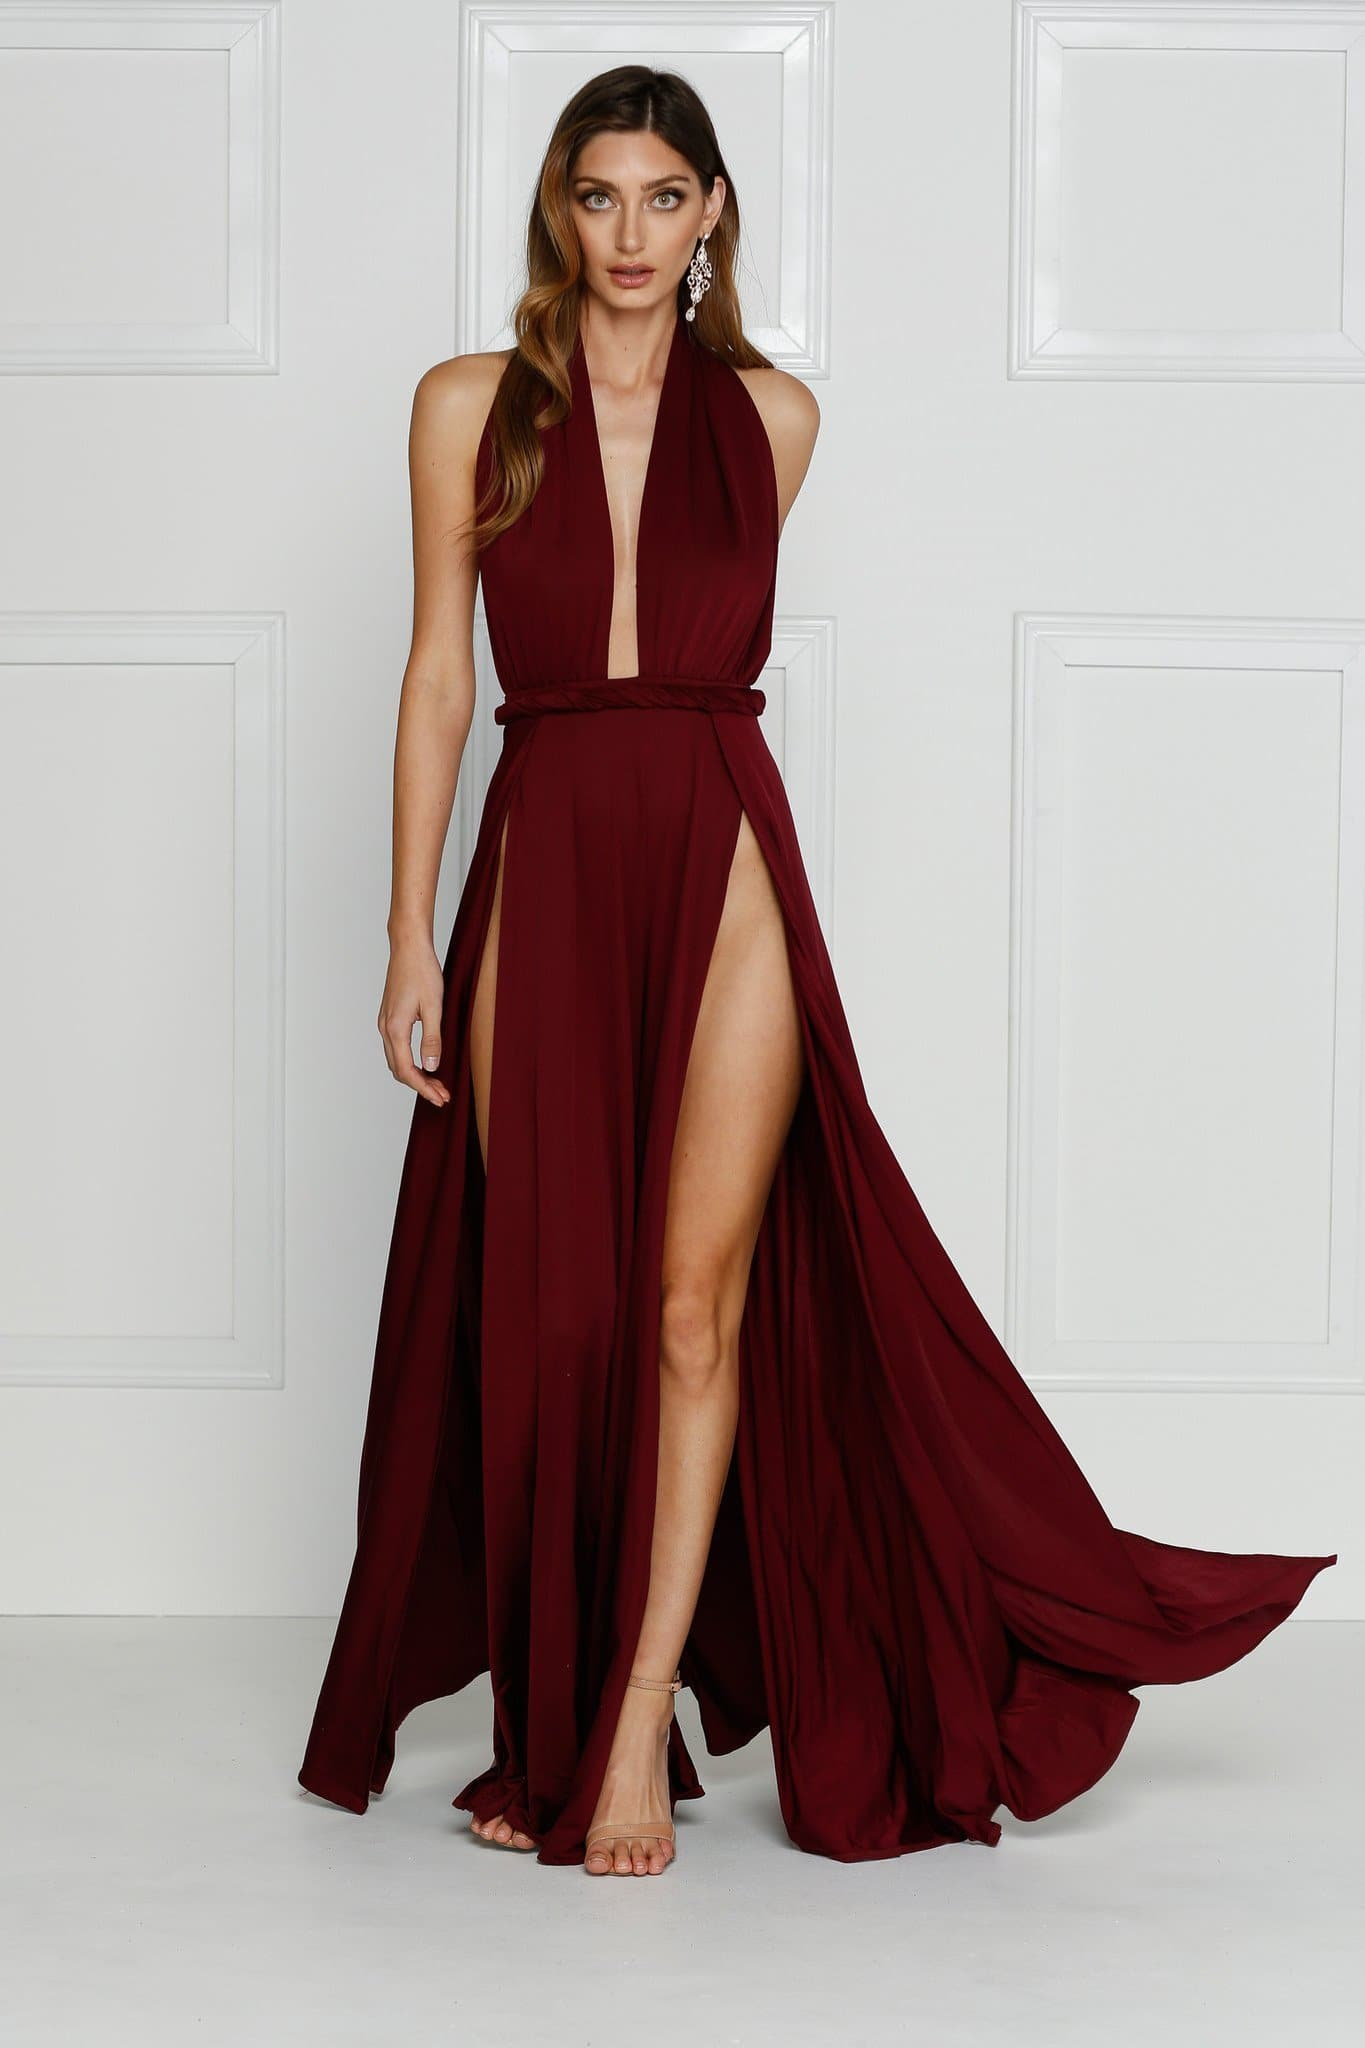 Catalina - Burgundy Grecian Style Jersey Gown with Low Back – A&N ...